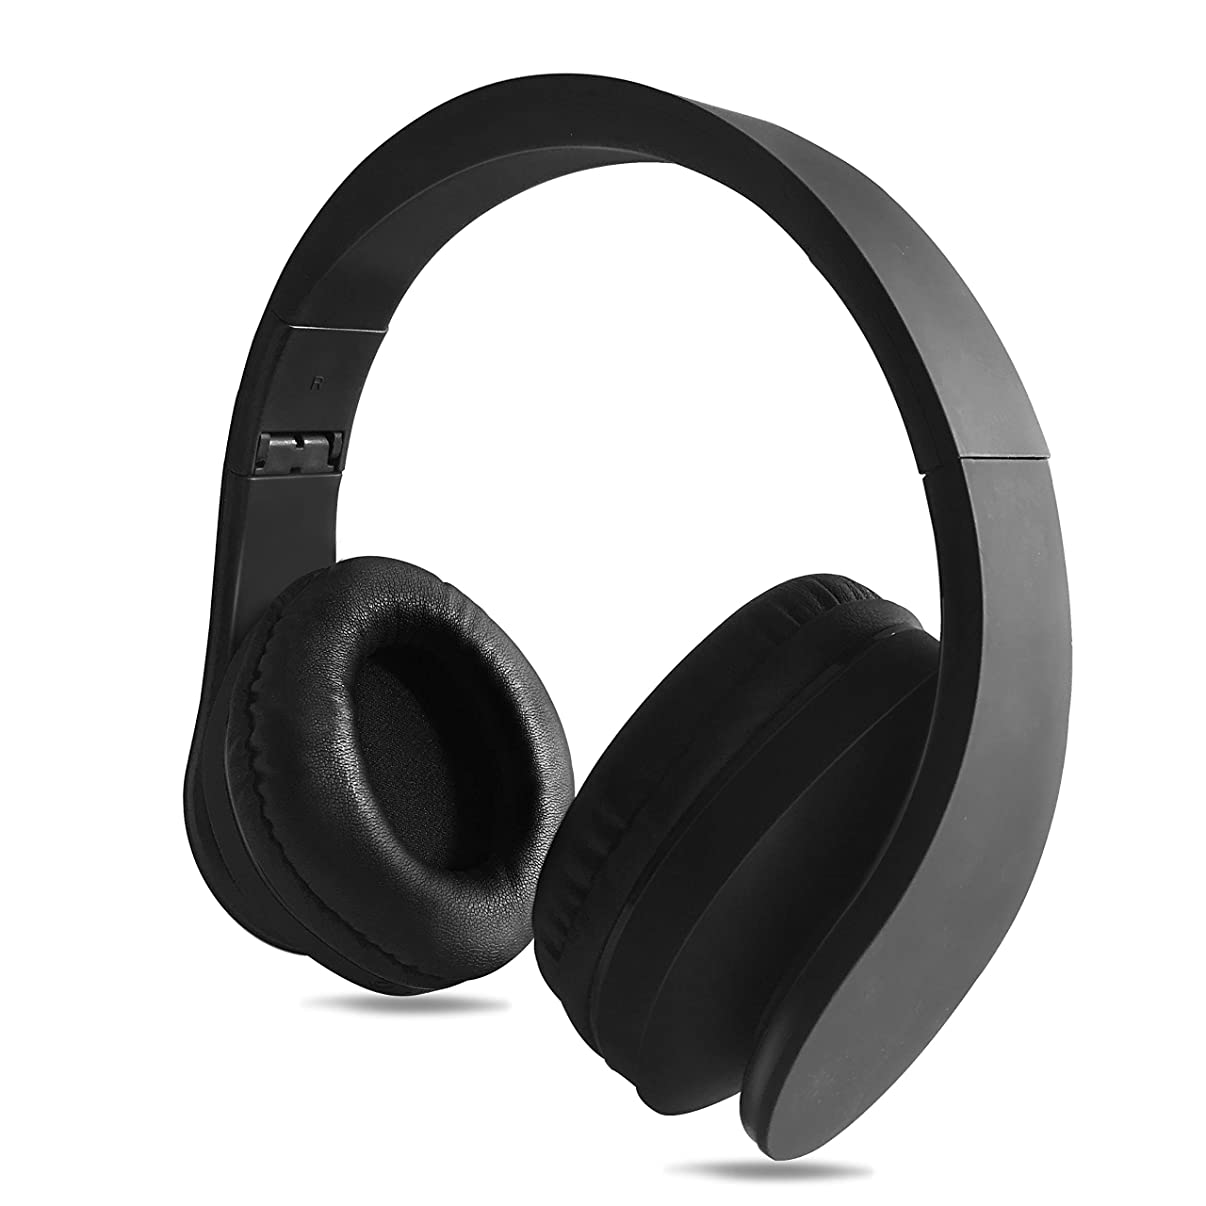 FX-Viktaria Dual Mode Wireless Headset, On Ear Headphone Foldable,Stereo Headset Lightweight Design, Soft, Compatible with iPods, iPhones, iPads, Smartphones, Tablets, PC and Laptops-Black